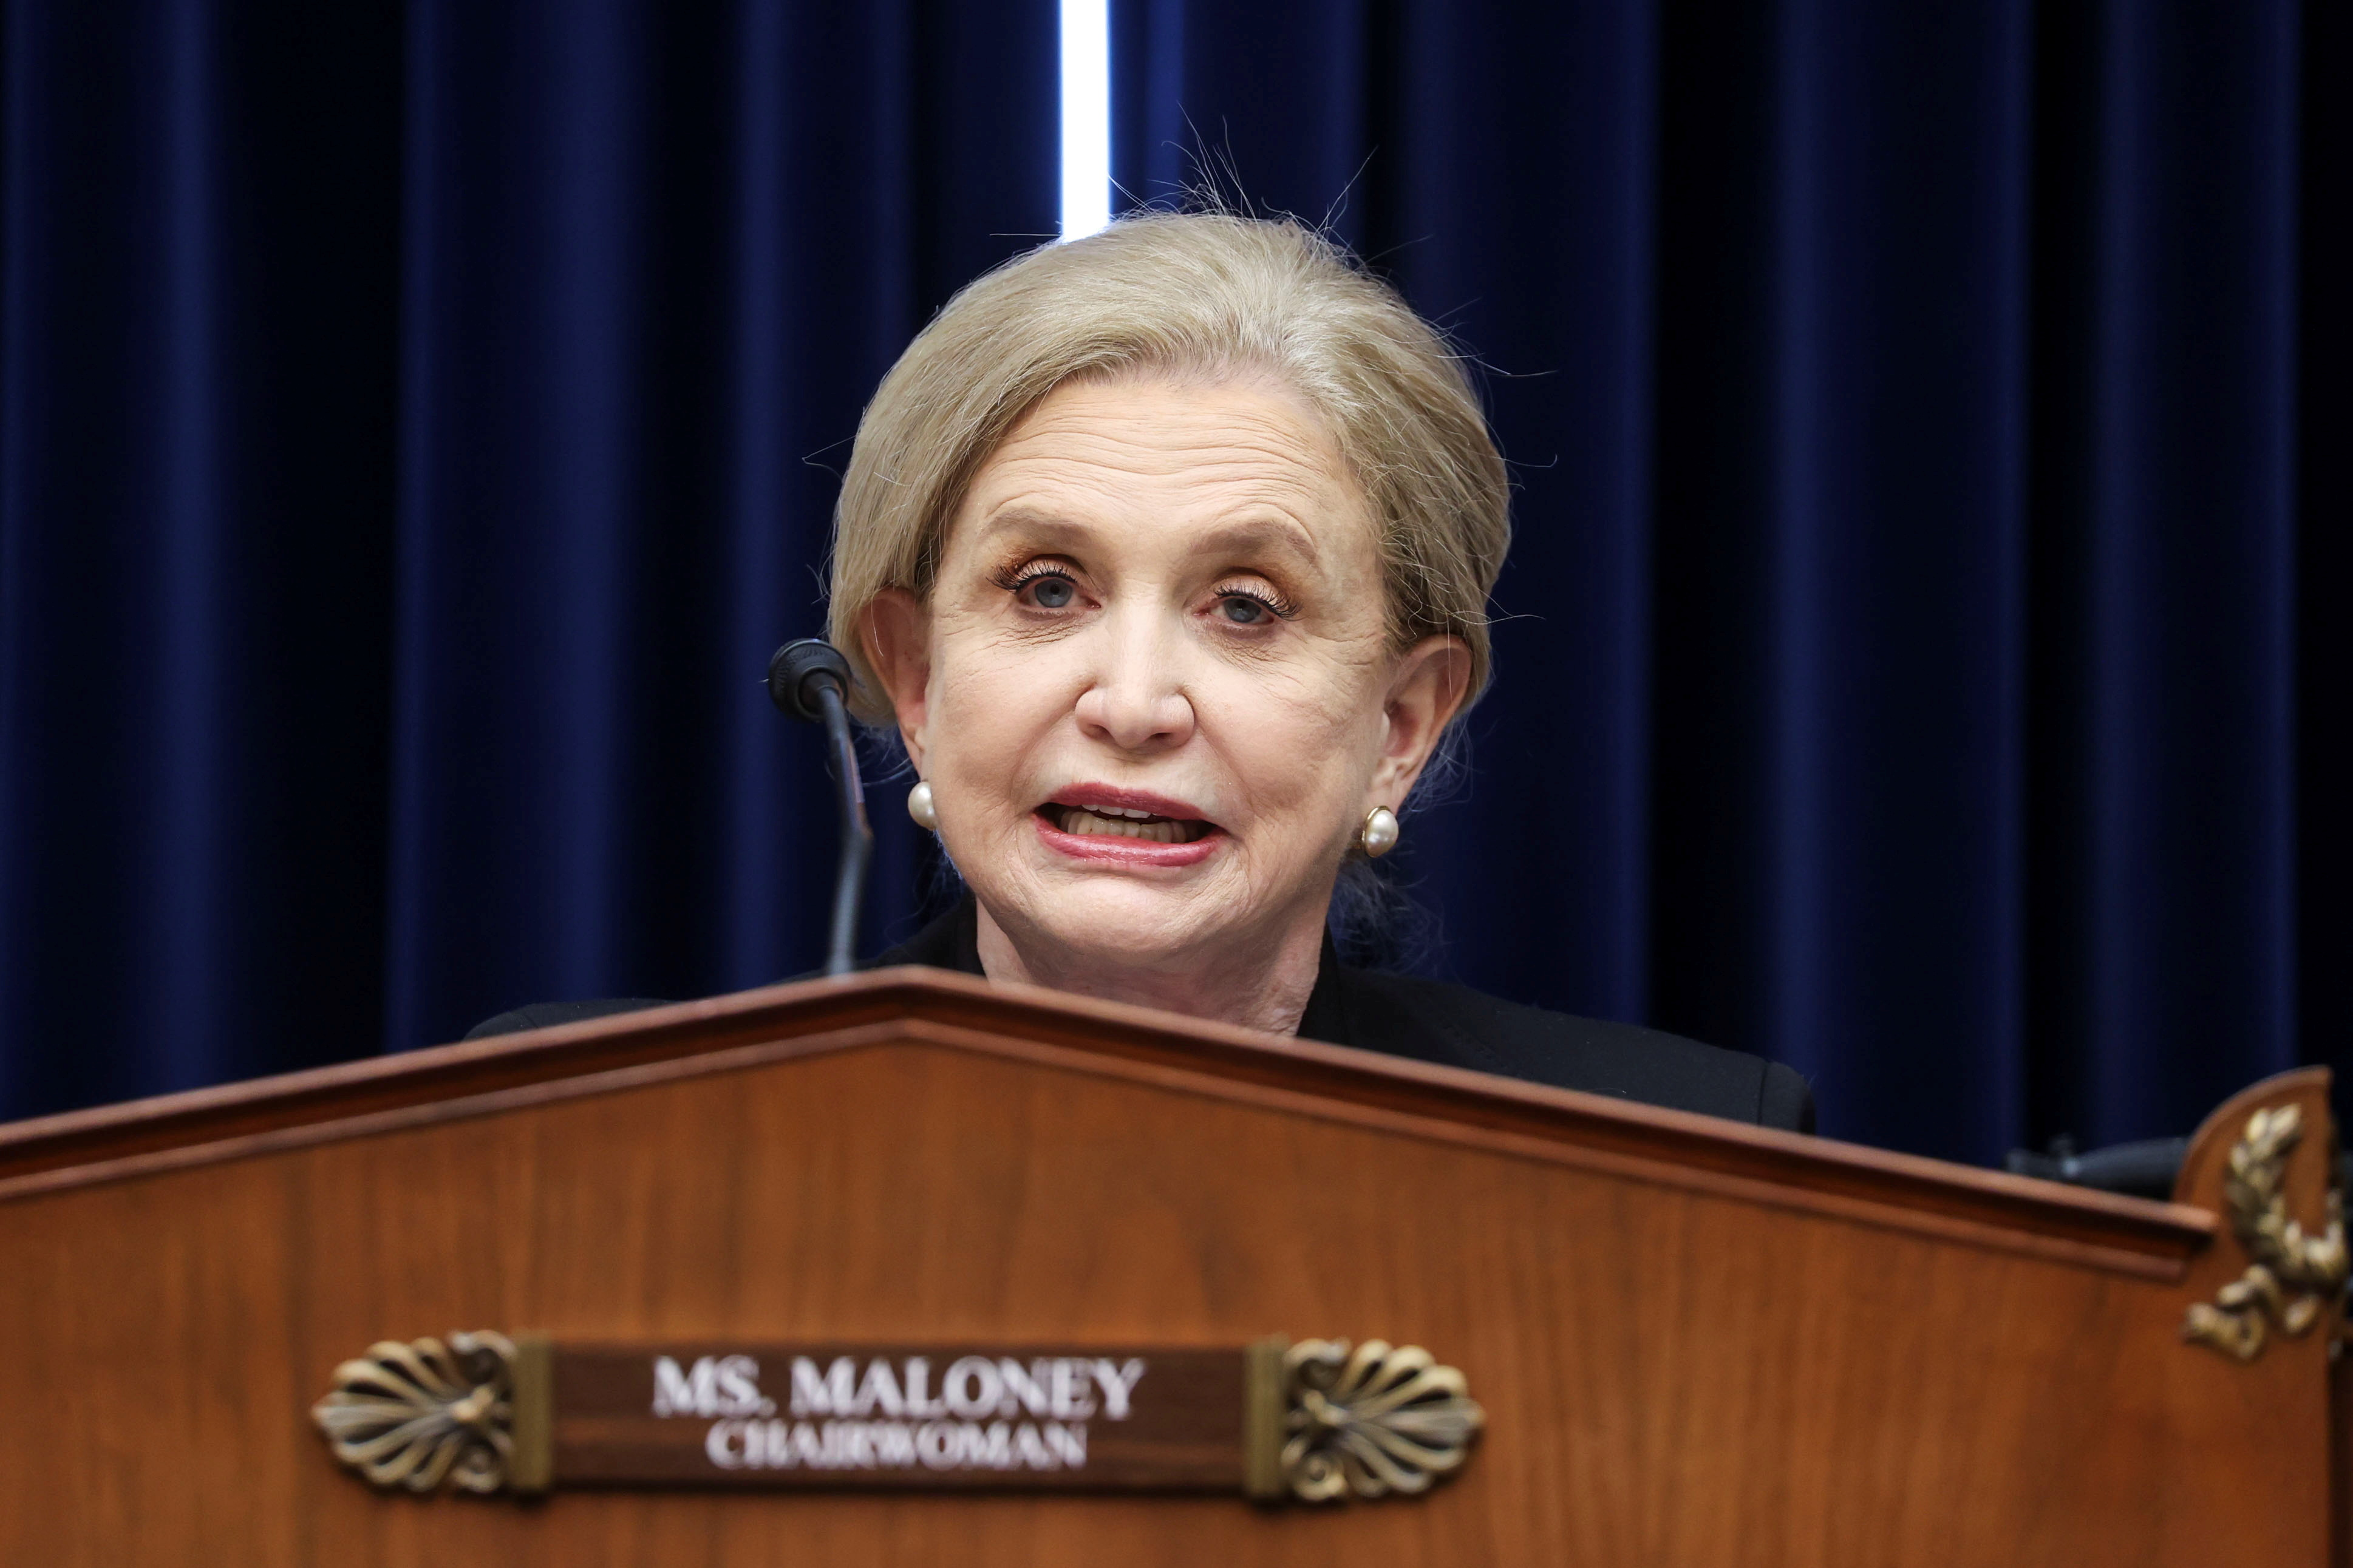 """House Oversight and Reform Committee Chairwoman Carolyn Maloney (D-NY) presides during a House Oversight and Reform Committee hearing titled """"The Capitol Insurrection: Unexplained Delays and Unanswered Questions,"""" regarding the on January 6 attack on the U.S. Capitol, on Capitol Hill in Washington, U..S., May 12, 2021 REUTERS/Jonathan Ernst/Pool"""